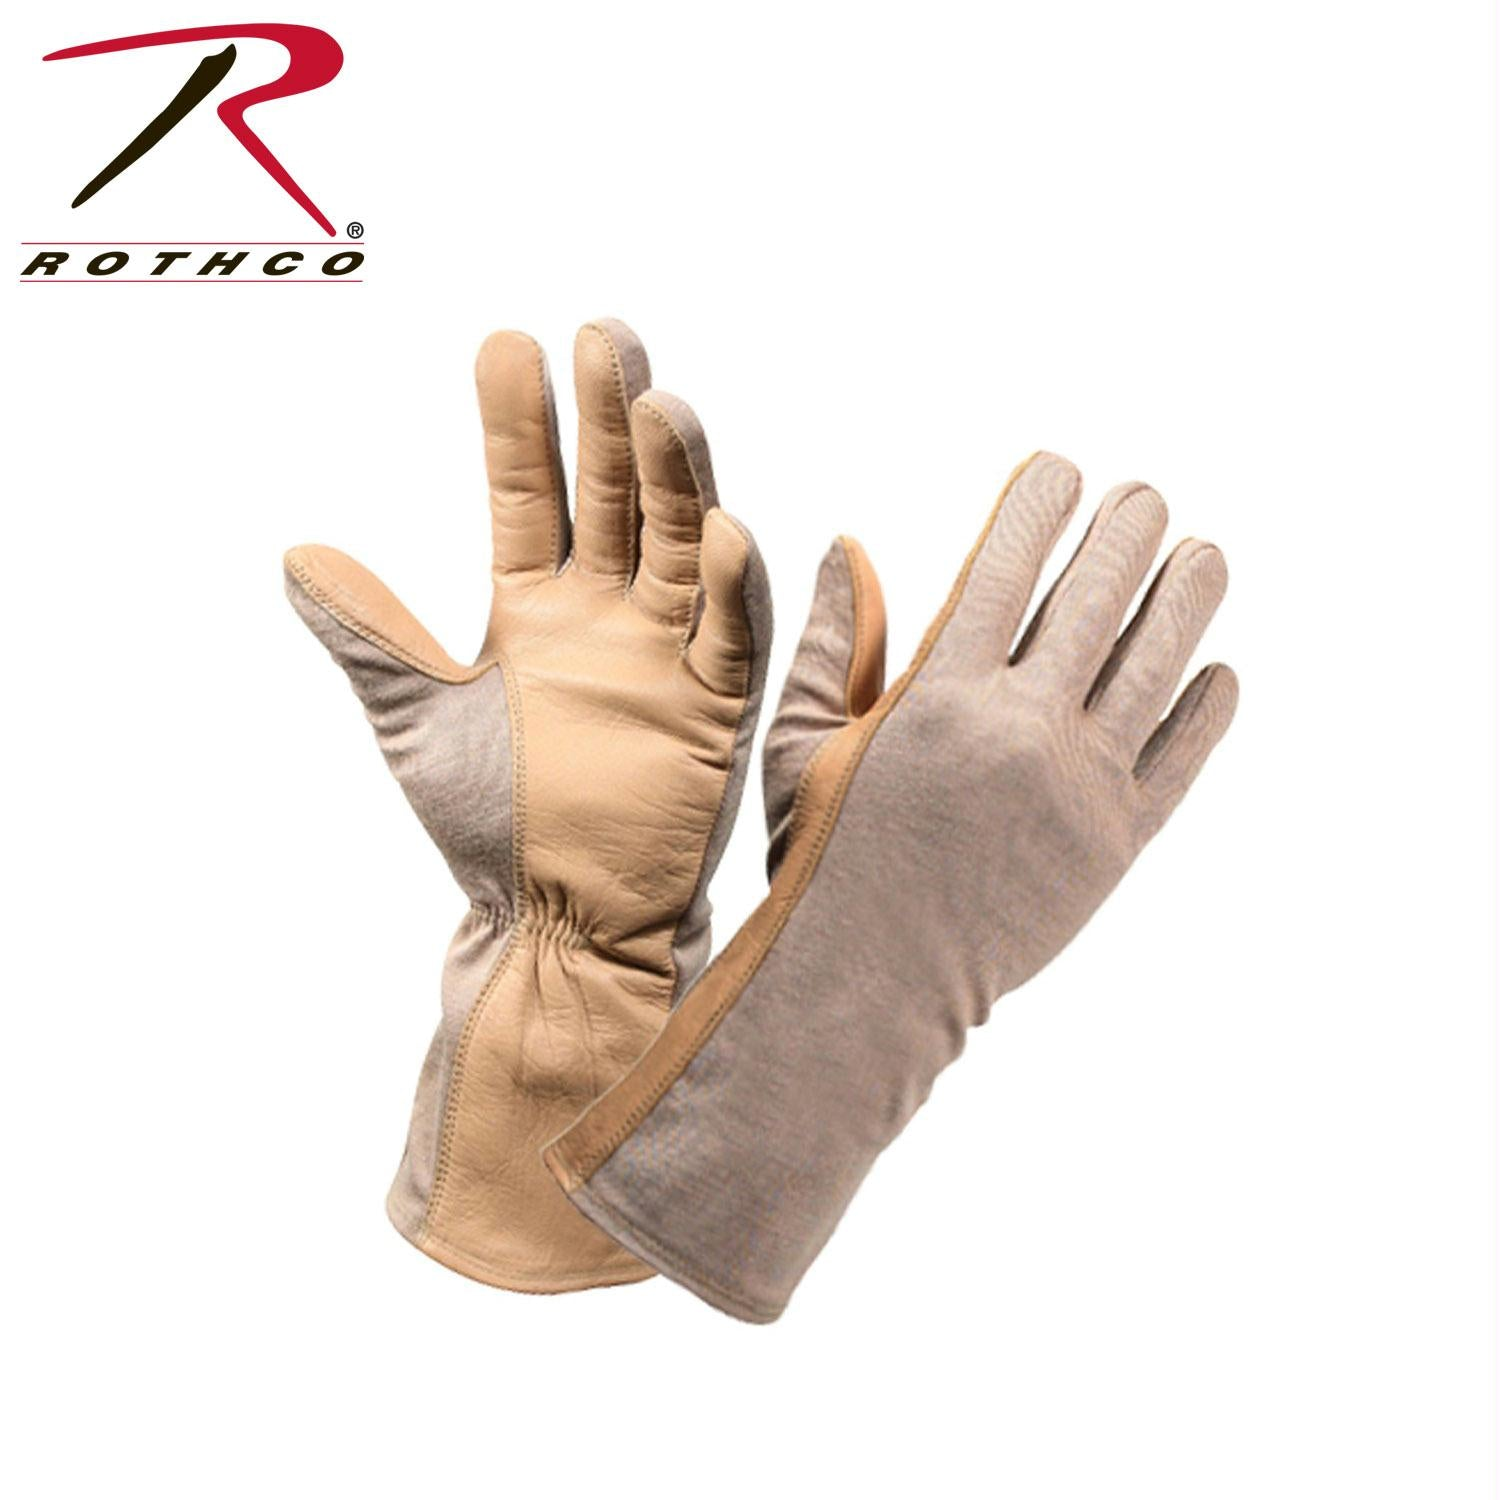 Rothco G.I. Type Flame & Heat Resistant Flight Gloves - Desert Sand / 10